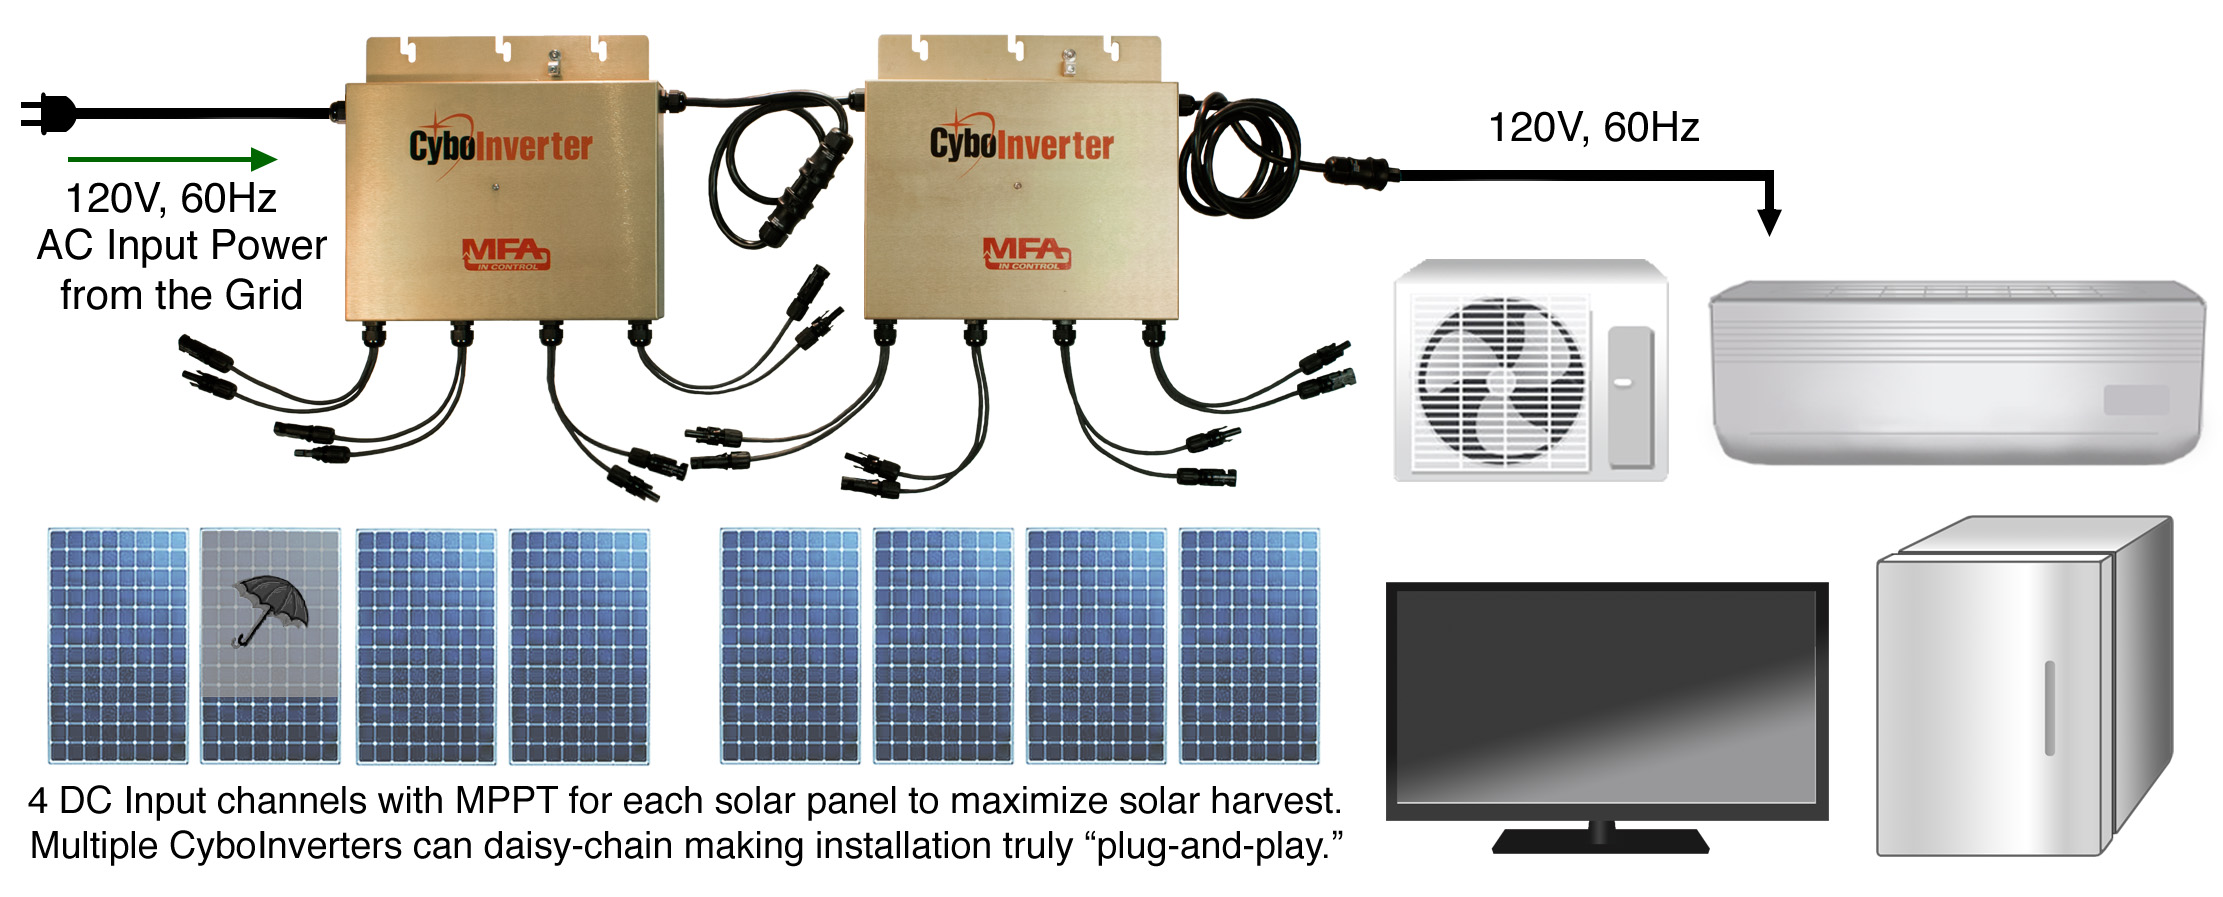 Cyboenergy Panelwiringdiagram Electrical Panel Wiring Diagram In Addition Solar The Above Illustrates An Ac Assisted Off Grid System With Two Cyboinverters Where A Master Unit Is Daisy Chained